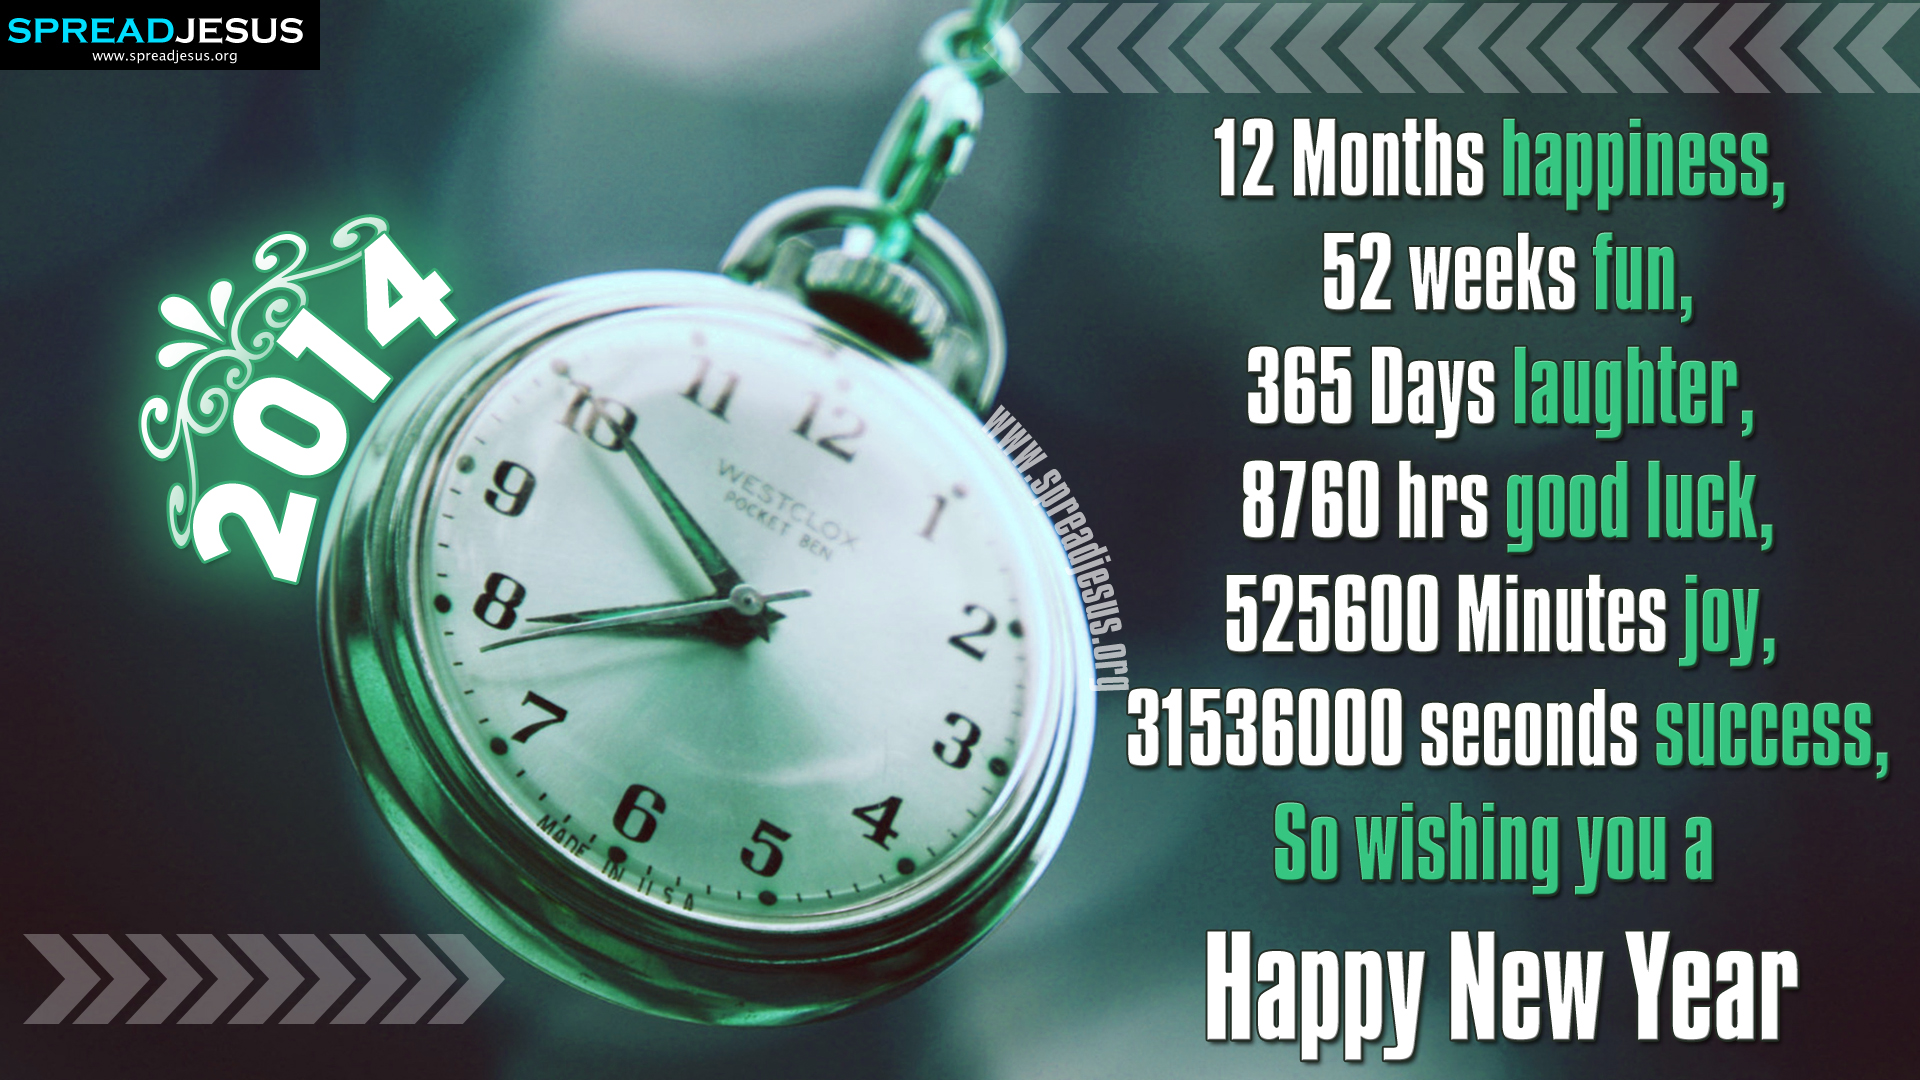 Happy new year 2014 greetings hd wallpapers new year 2014 greetings hd wallpapers wishing you a happy new year 12 months happiness m4hsunfo